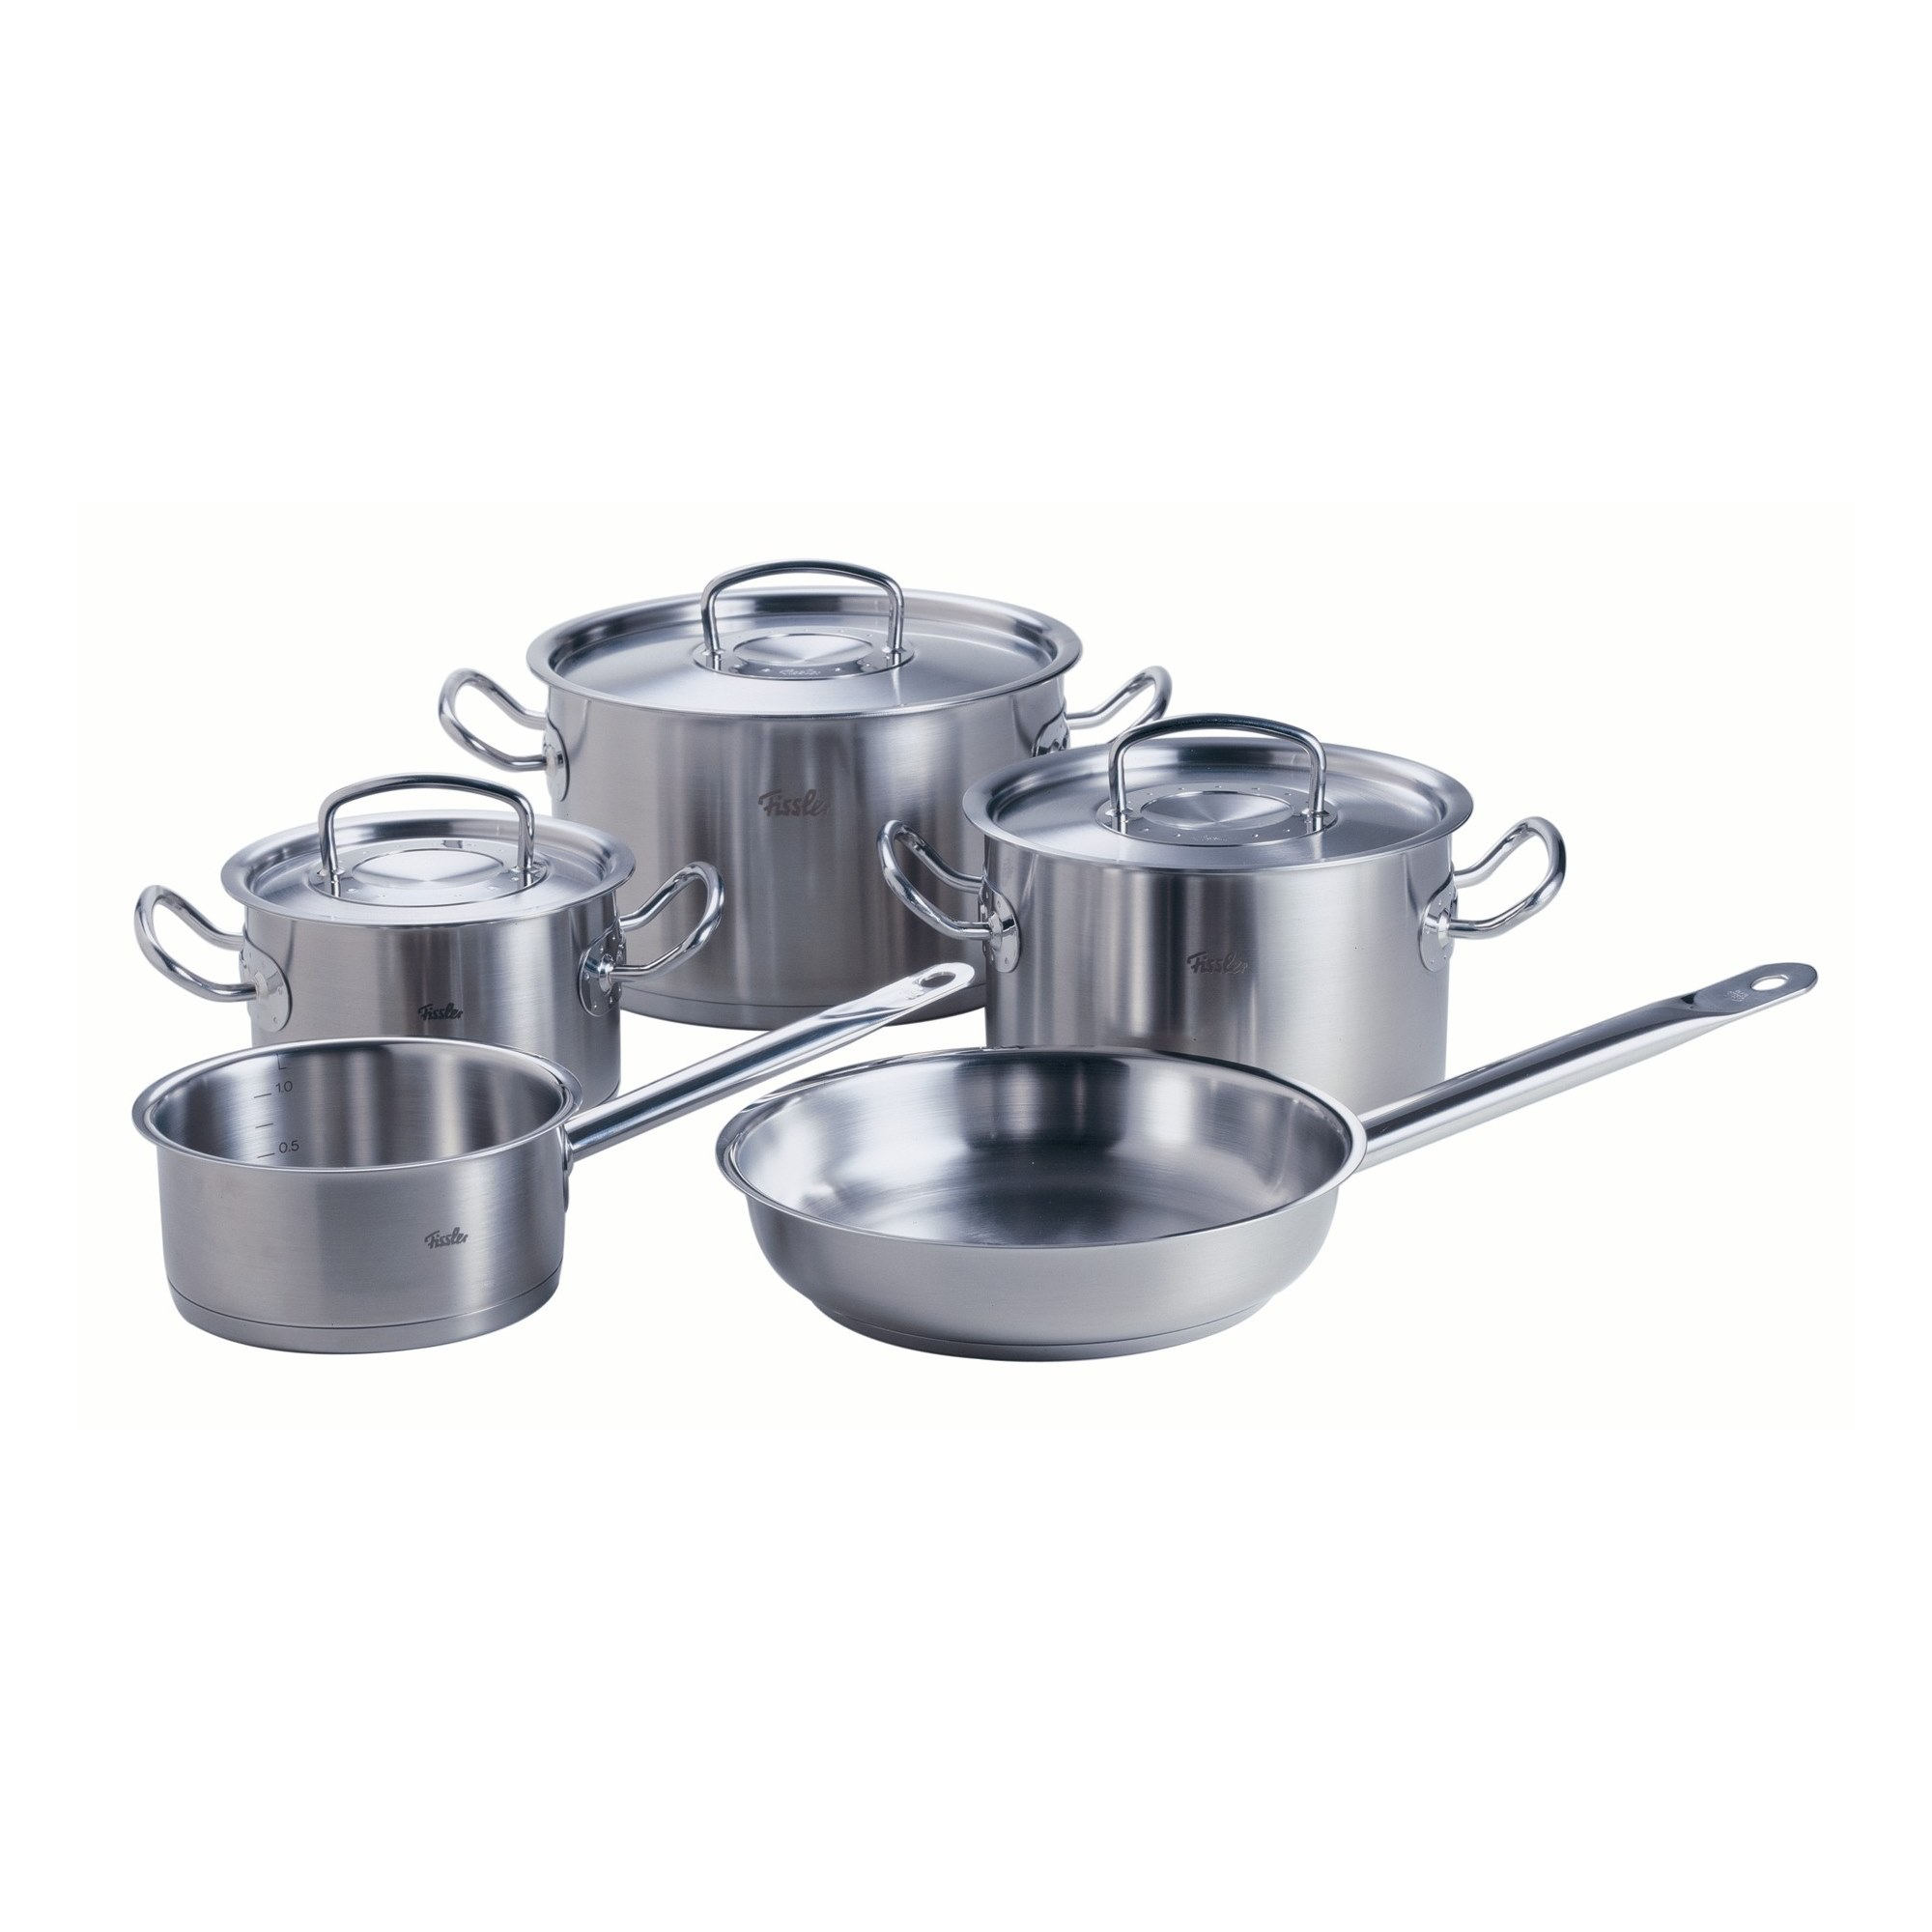 Fissler Profi Collection Set Fissler Topf Set Original Profi Collection 5 Teilig Mit